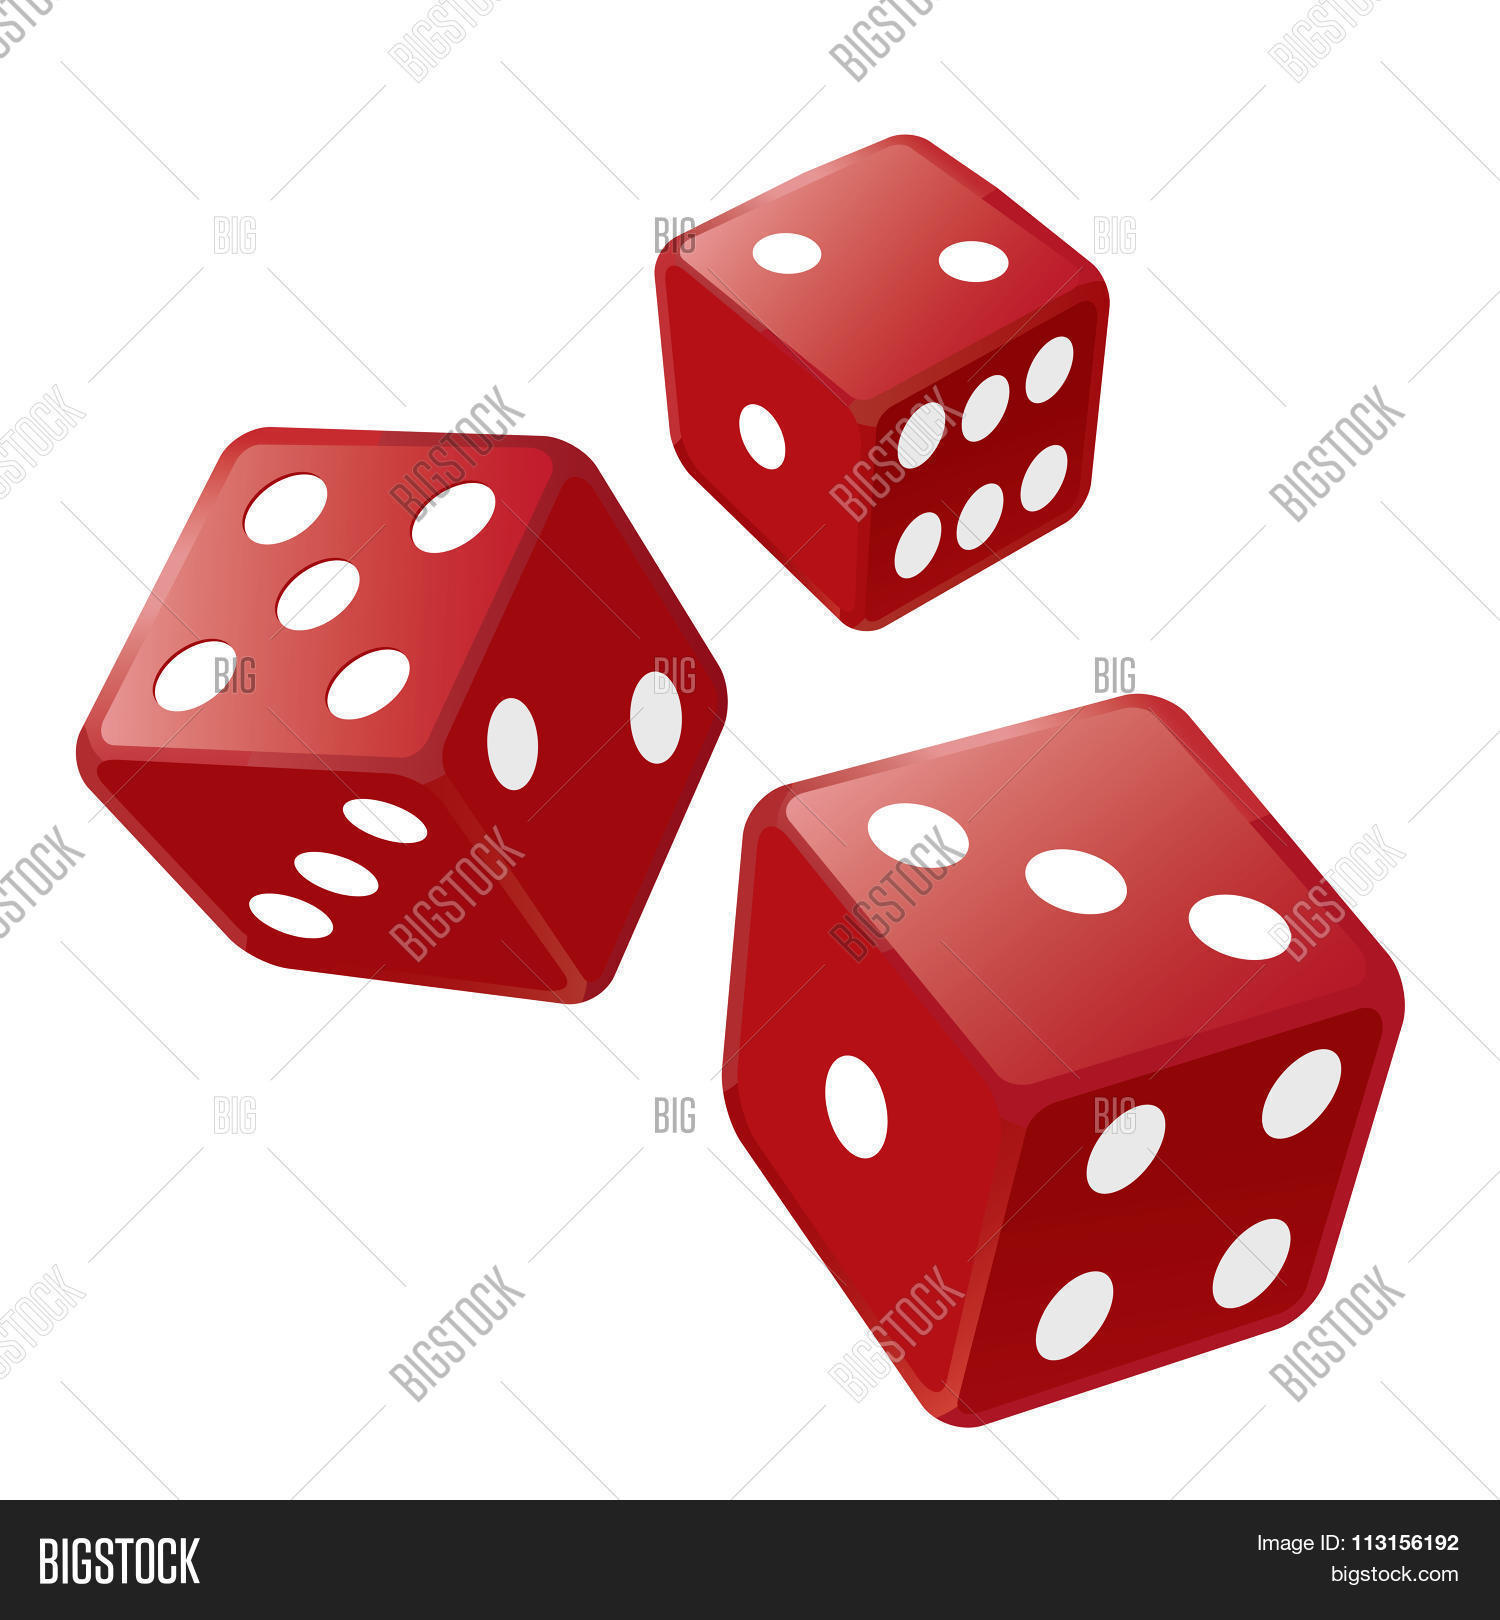 Three Red Dices Vector & Photo | Bigstock